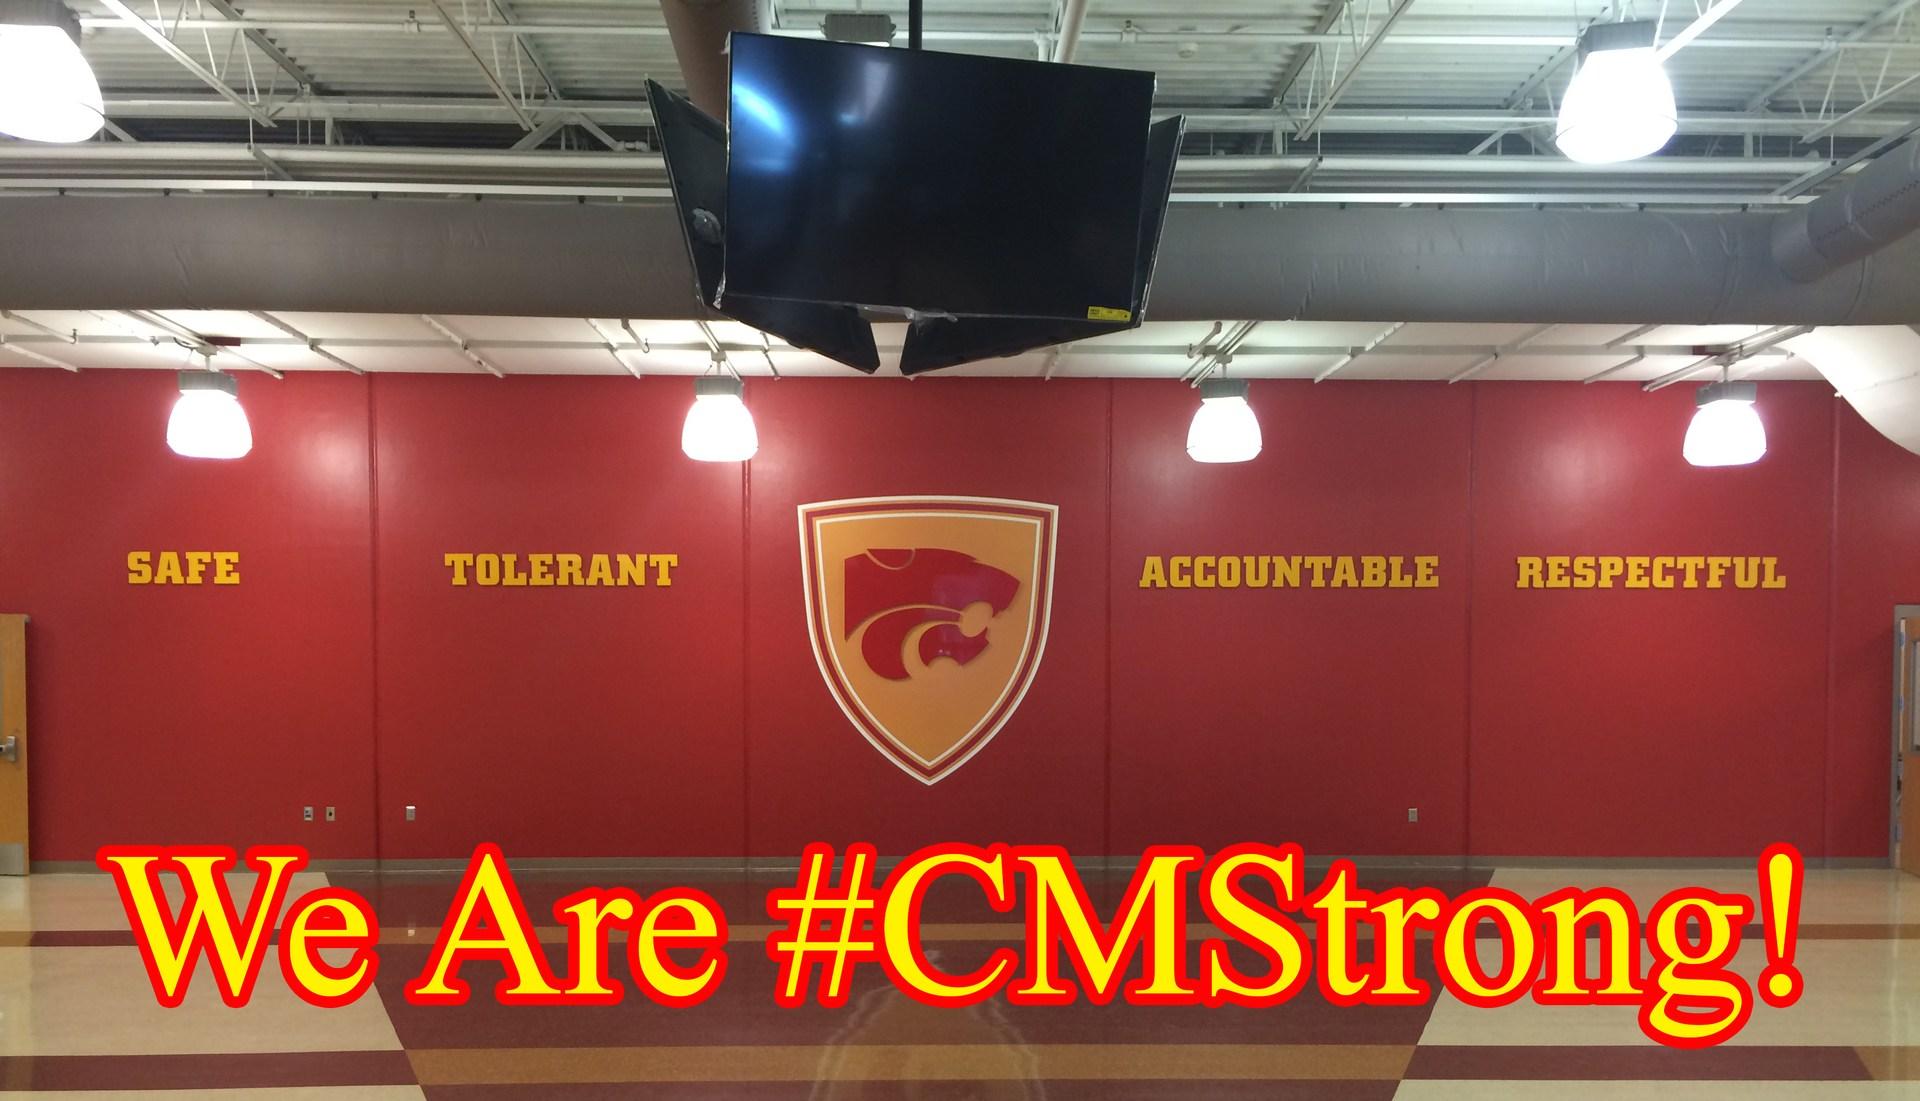 #CMStrong